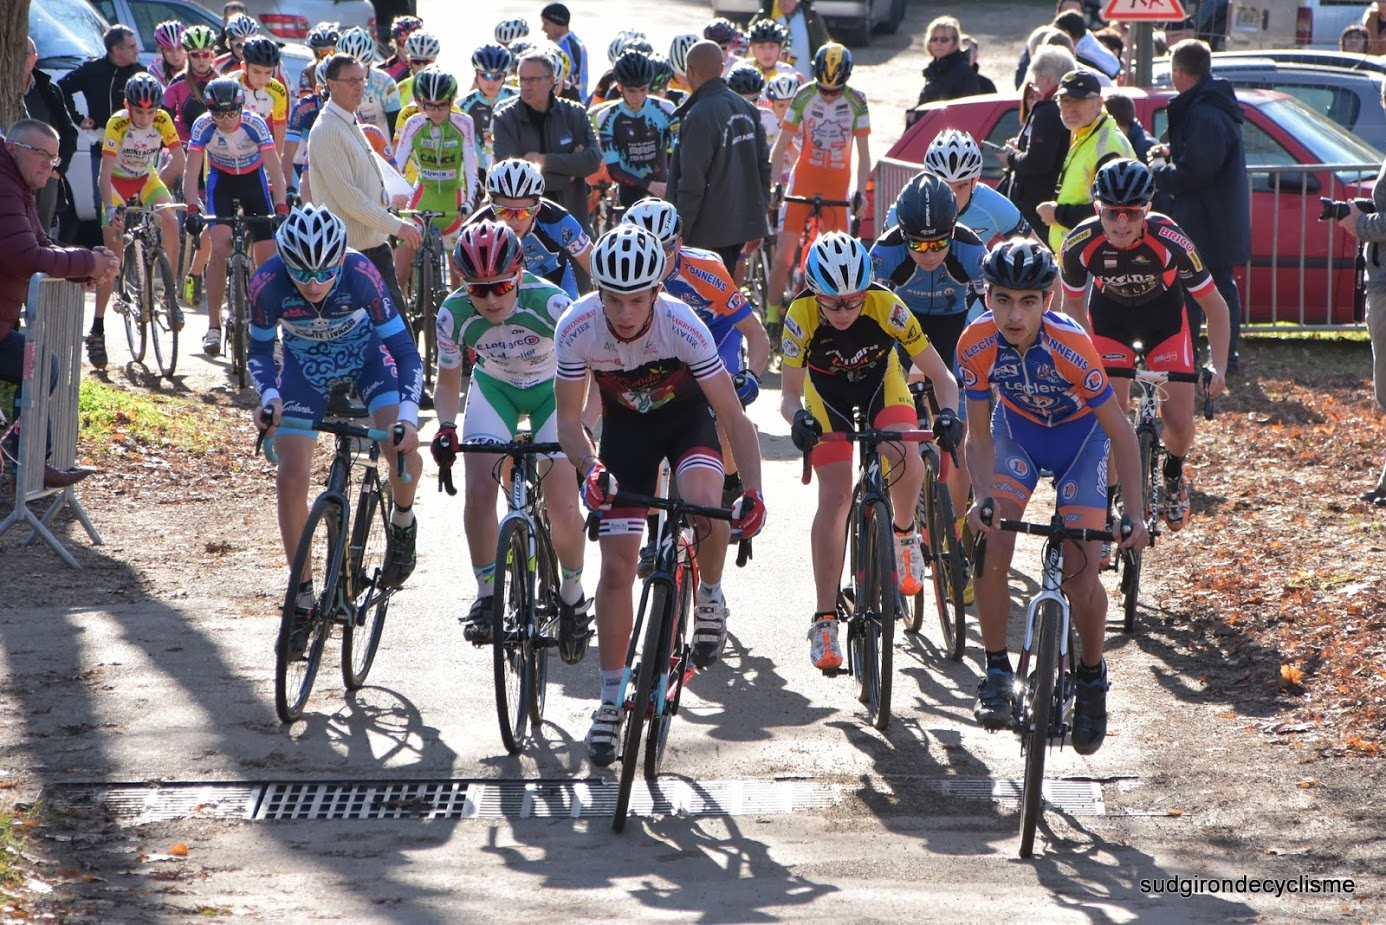 Championnat d'aquitaine cyclo cross cadets juniors dames 2016 005